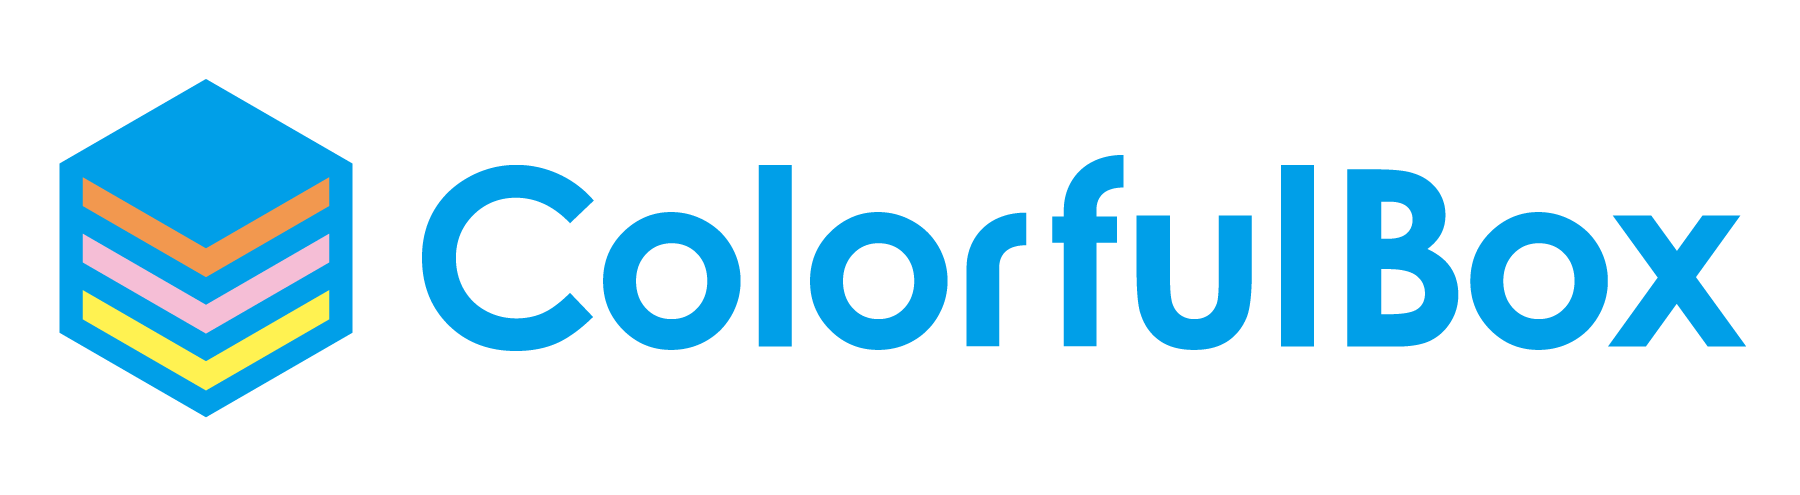 colorfulBox-logo-normal